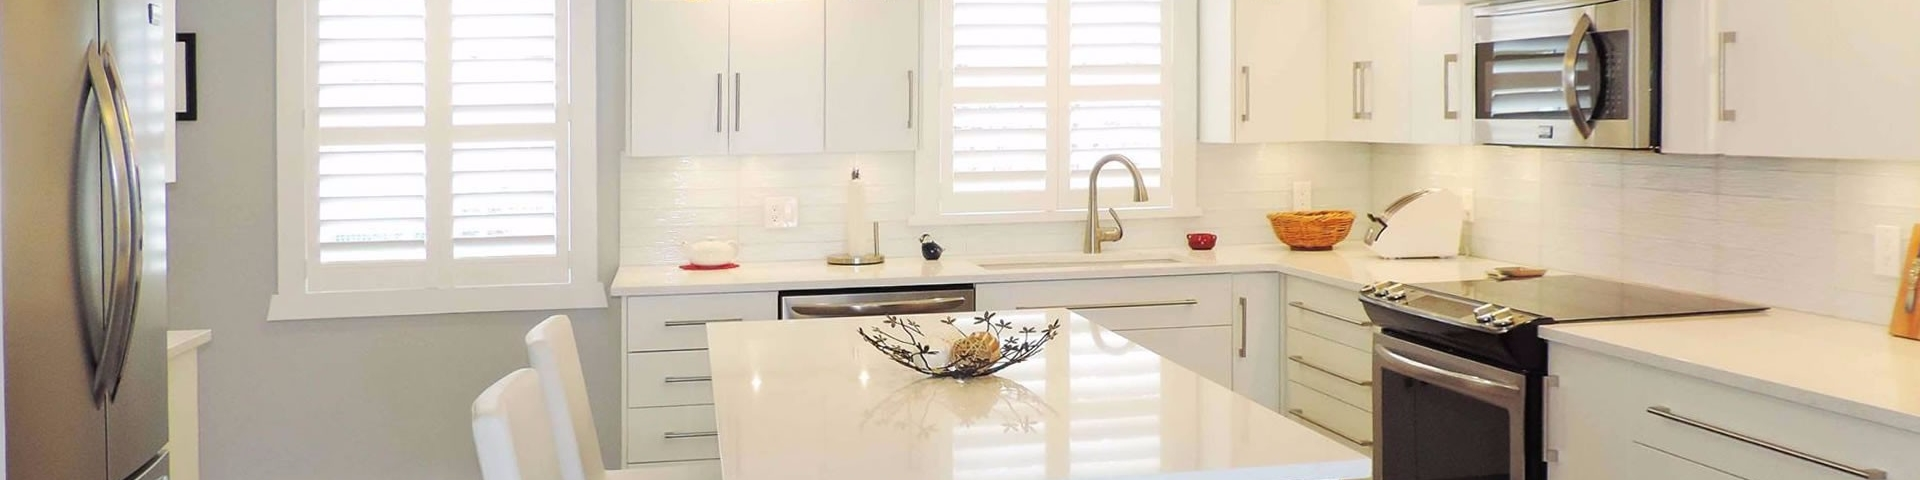 about designs jpg b amell amells cabinetry a better kitchen s c